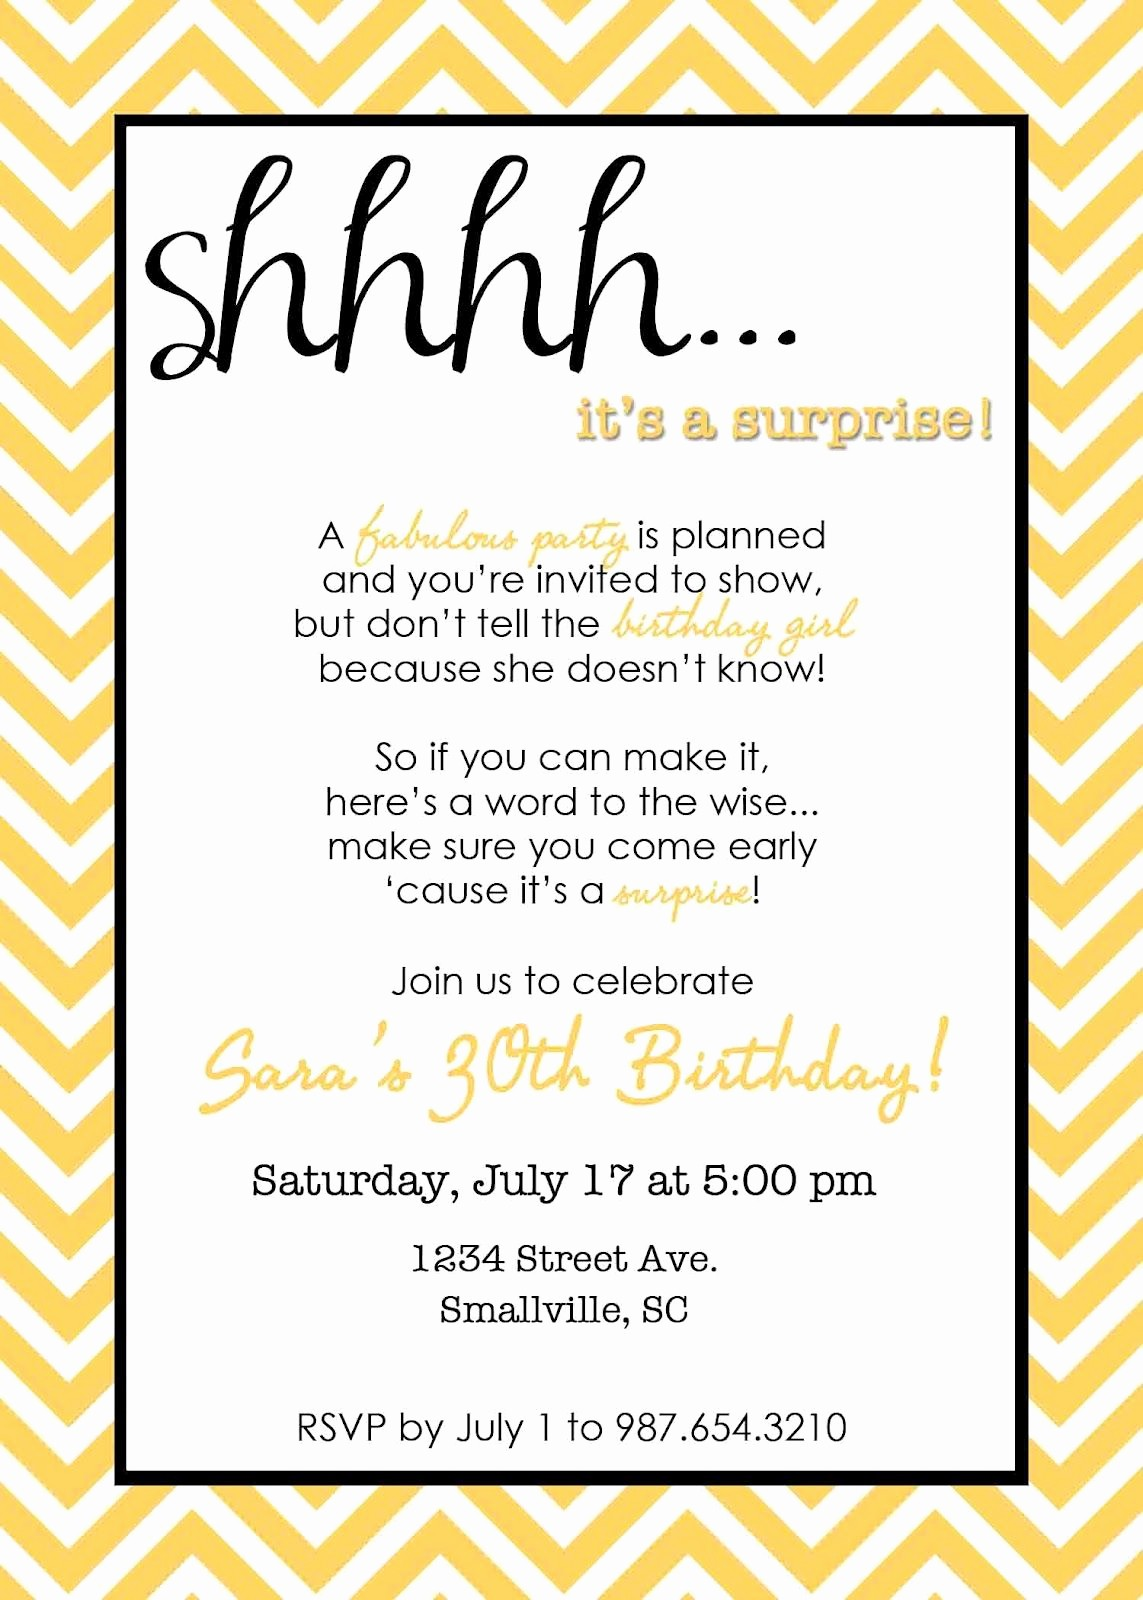 Surprise Birthday Party Invitation Template Unique Wording for Surprise Birthday Party